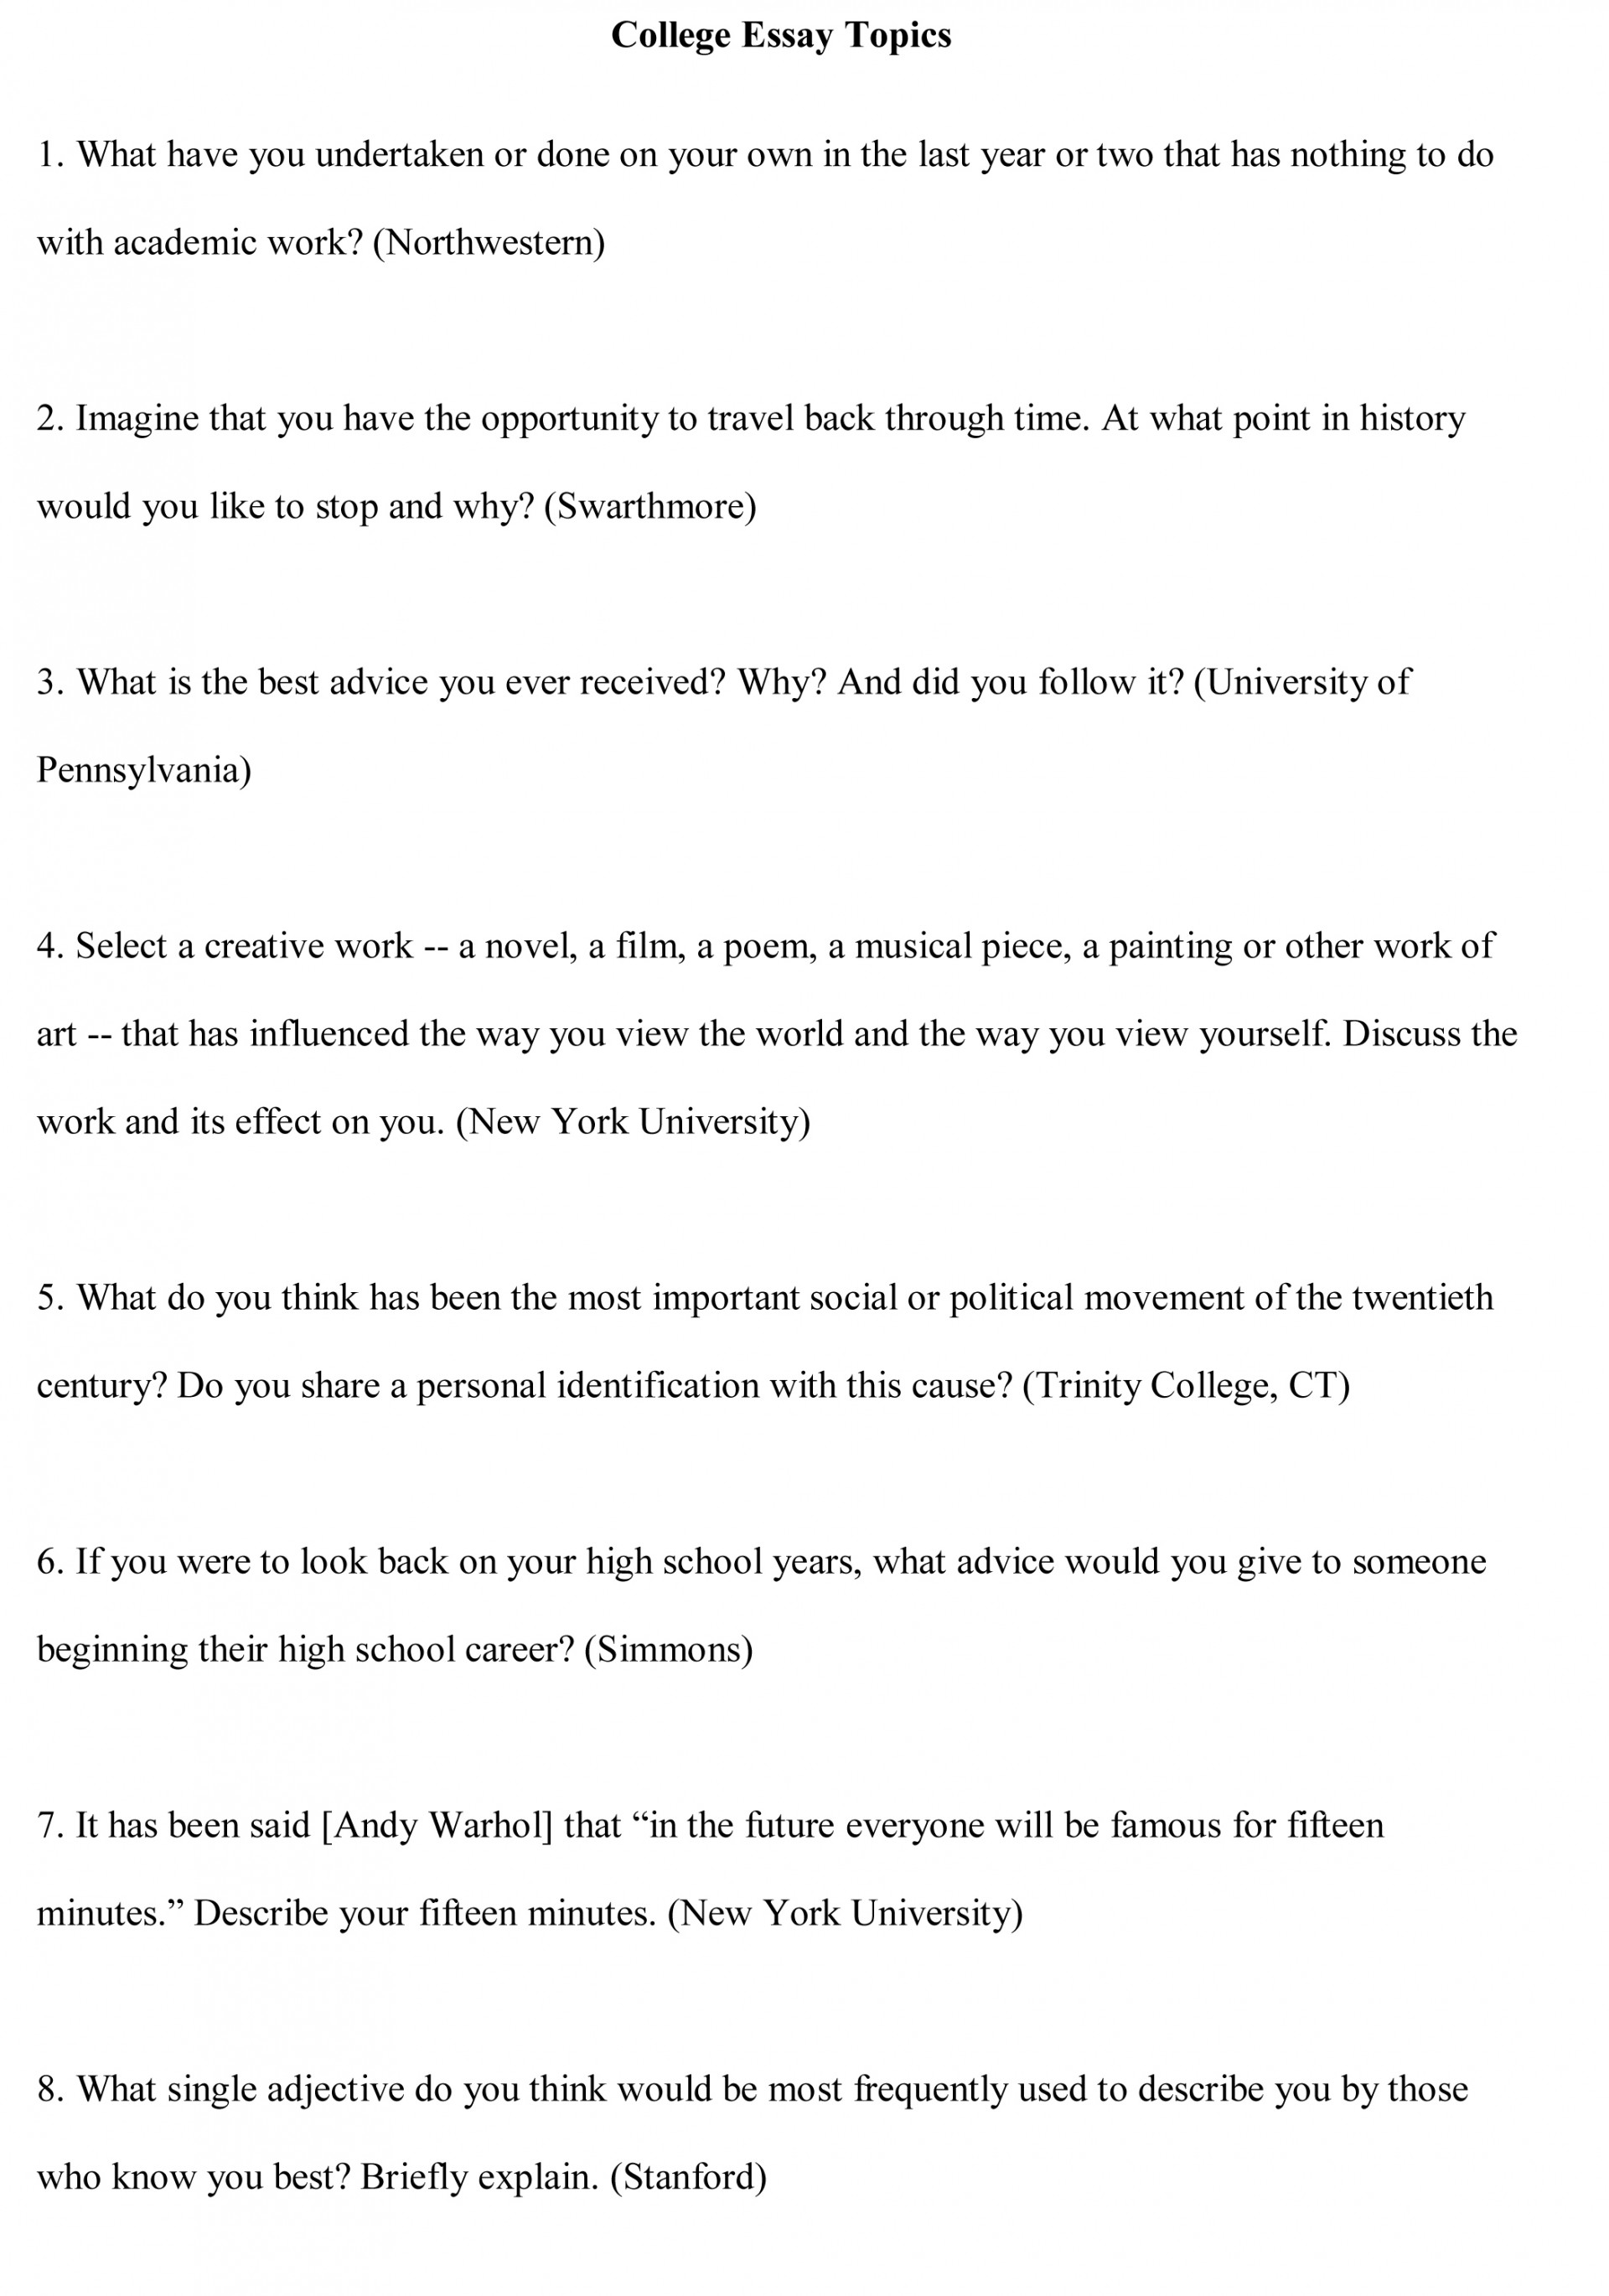 014 Essay Topics College Free Sample1 Archaicawful List For High School Students Freshman 1920